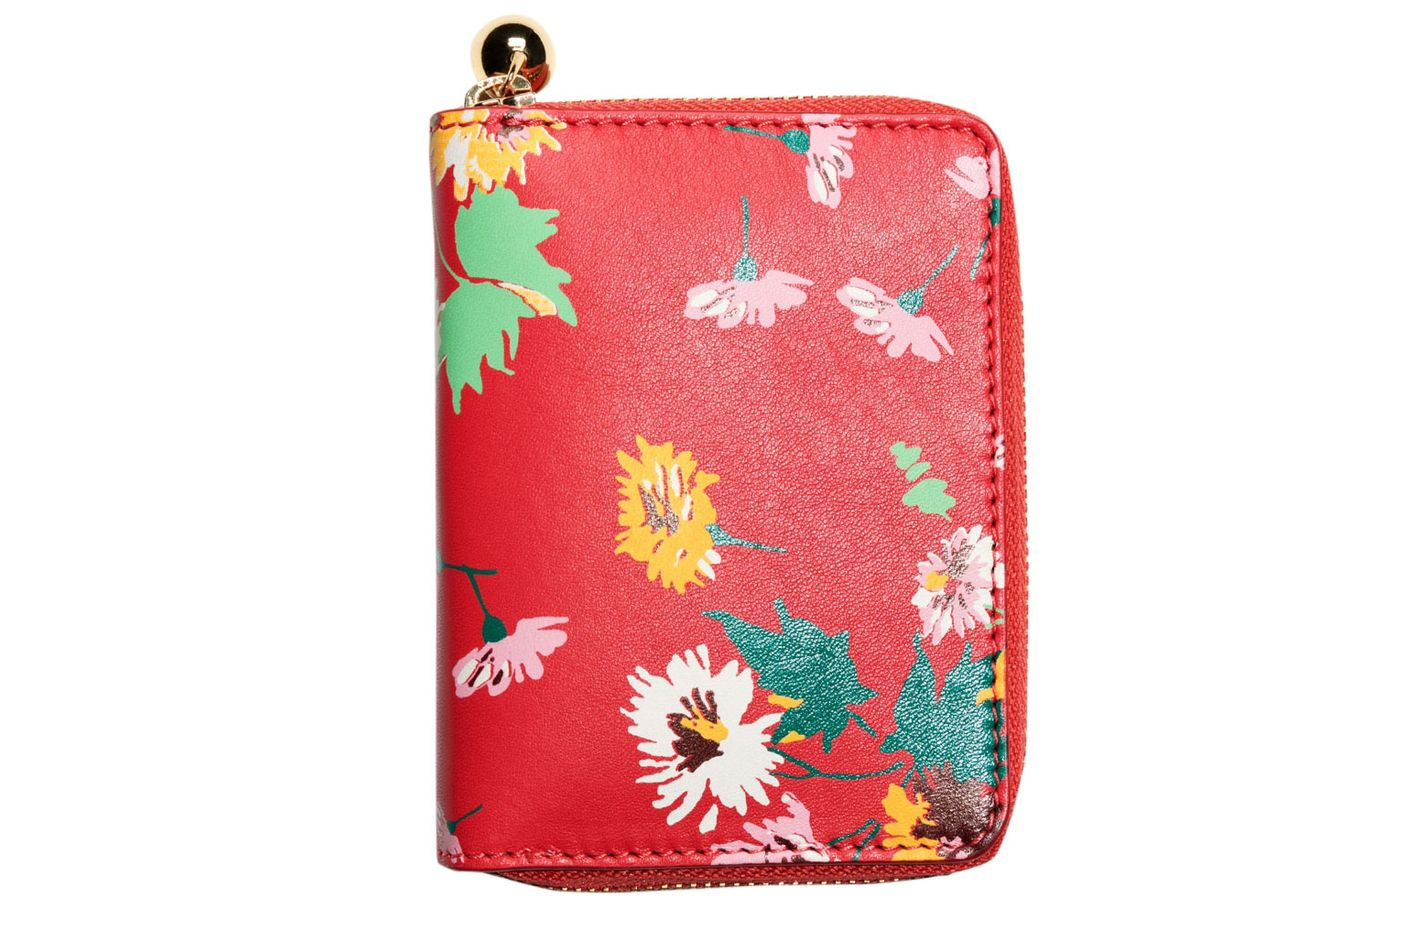 & Other Stories Floral Leather Wallet